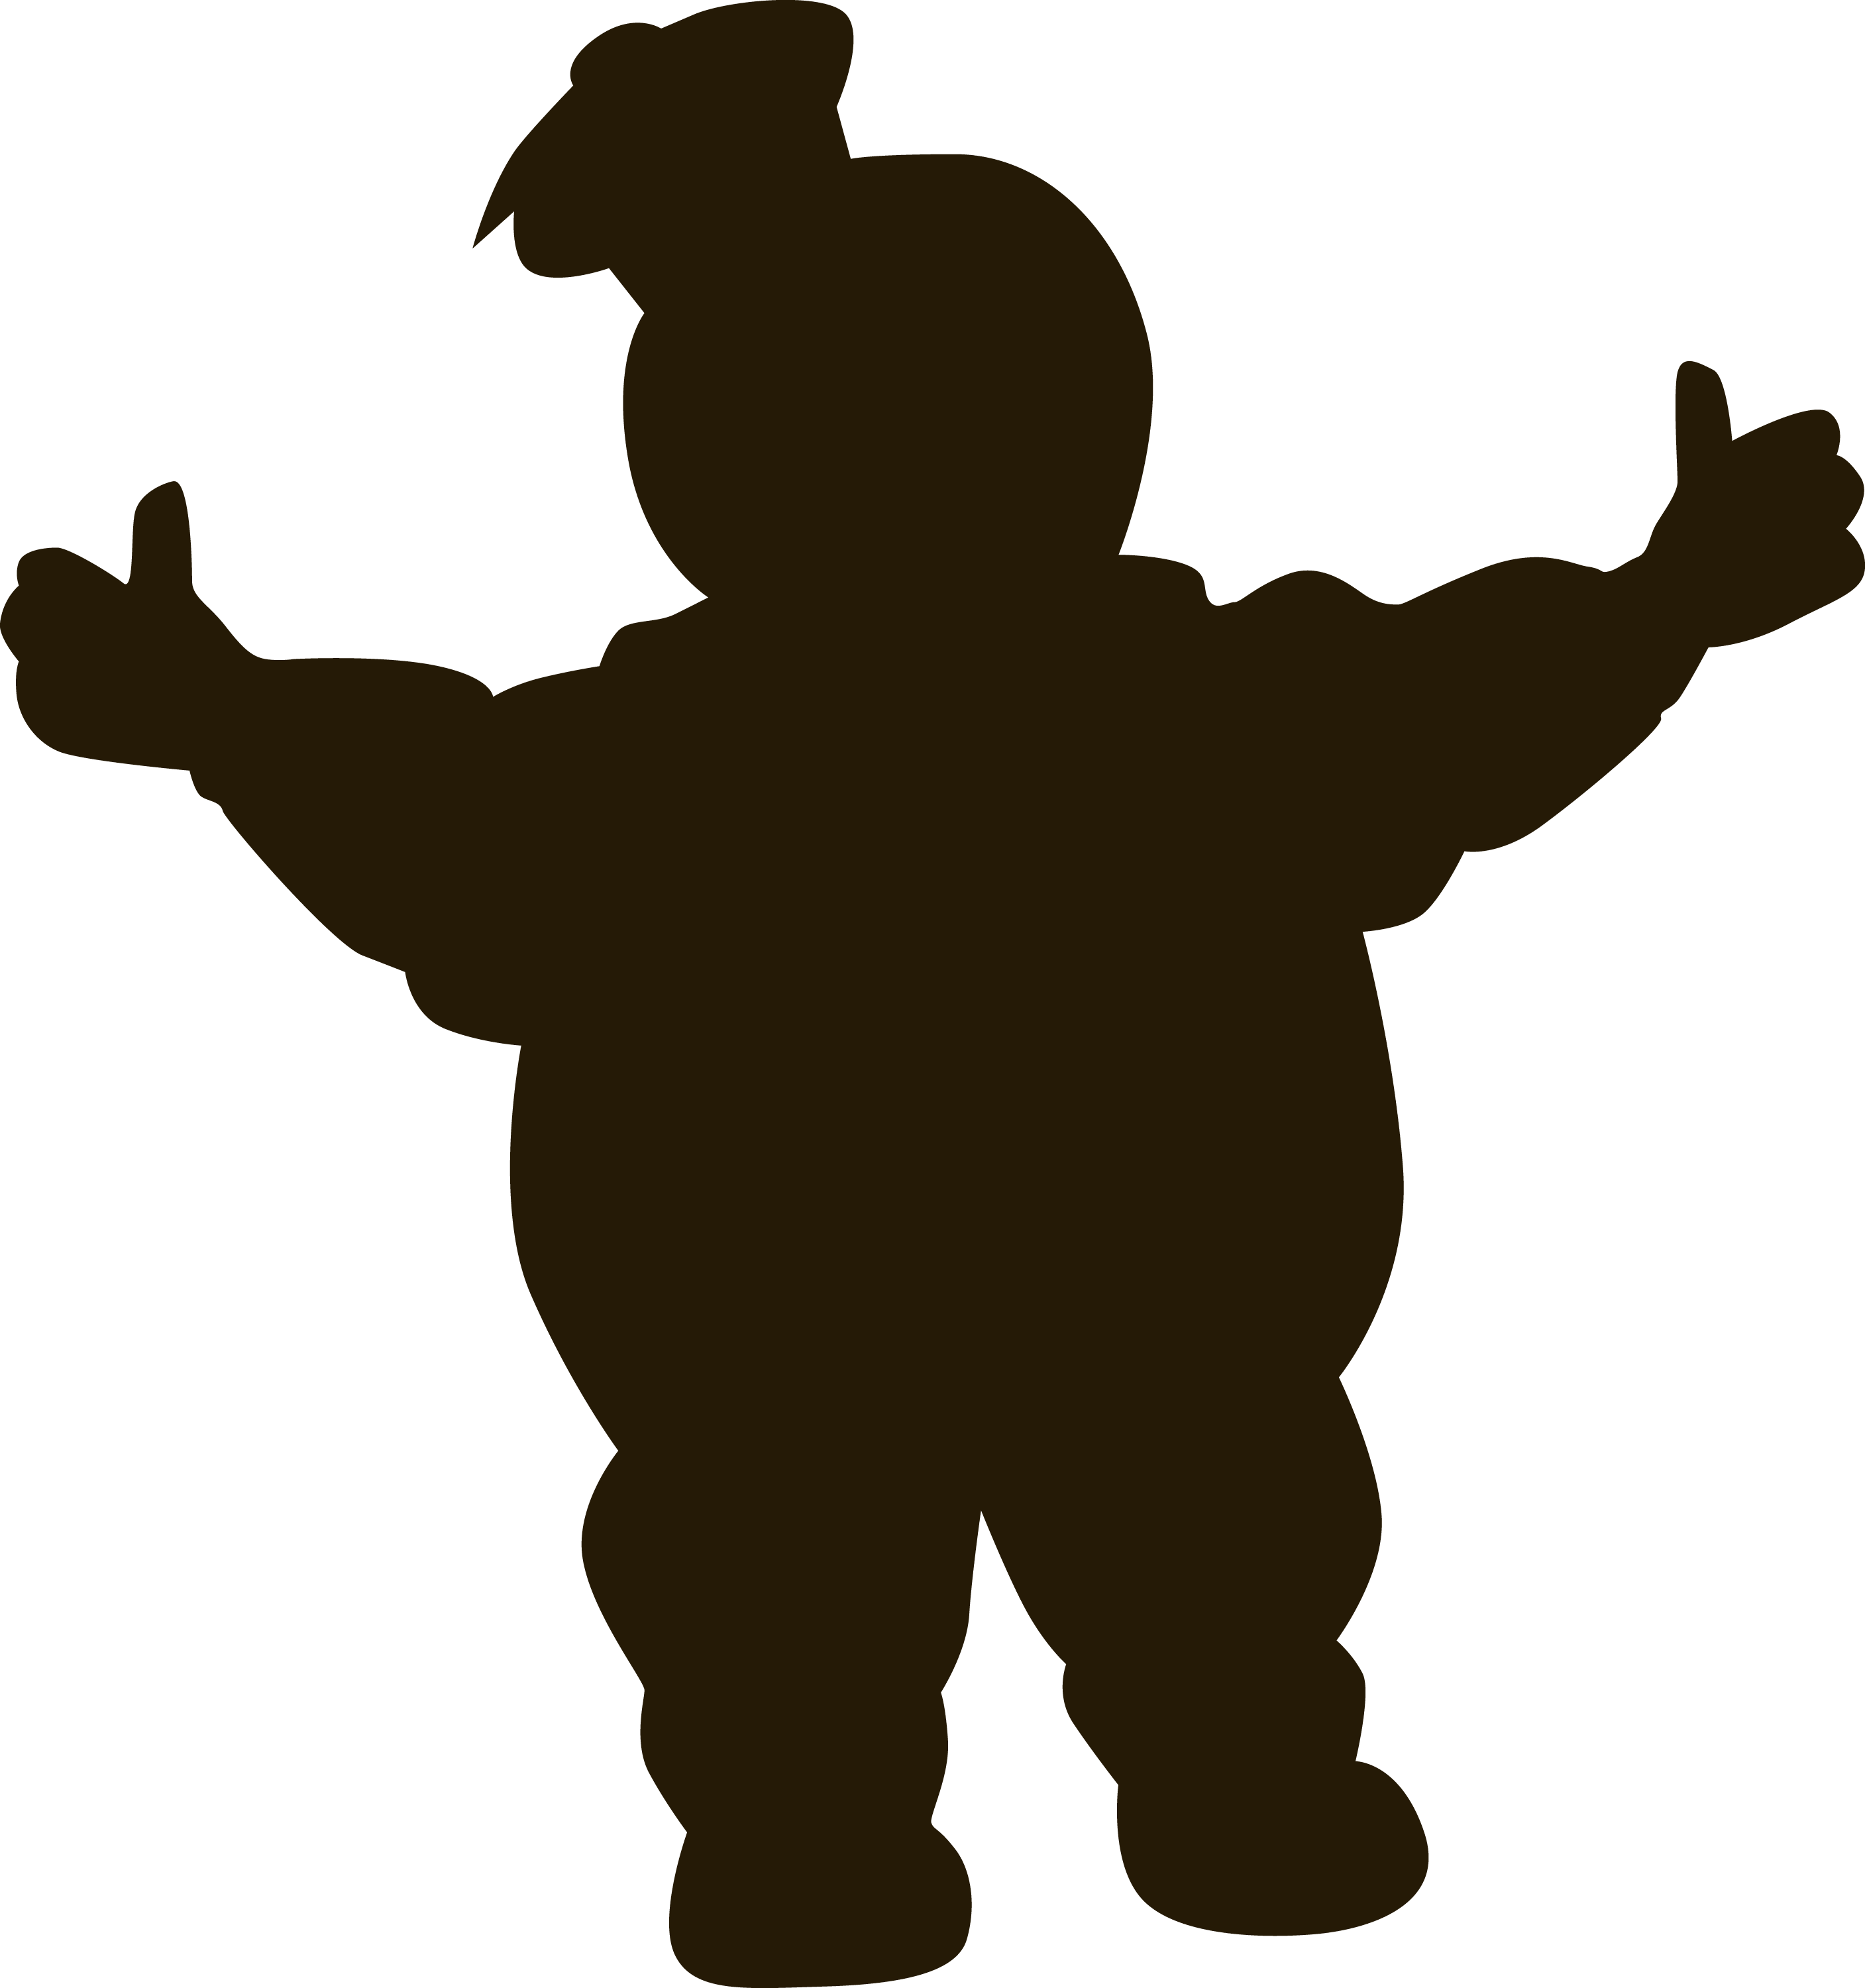 Ghostbusters svg png. Silhouette at getdrawings com